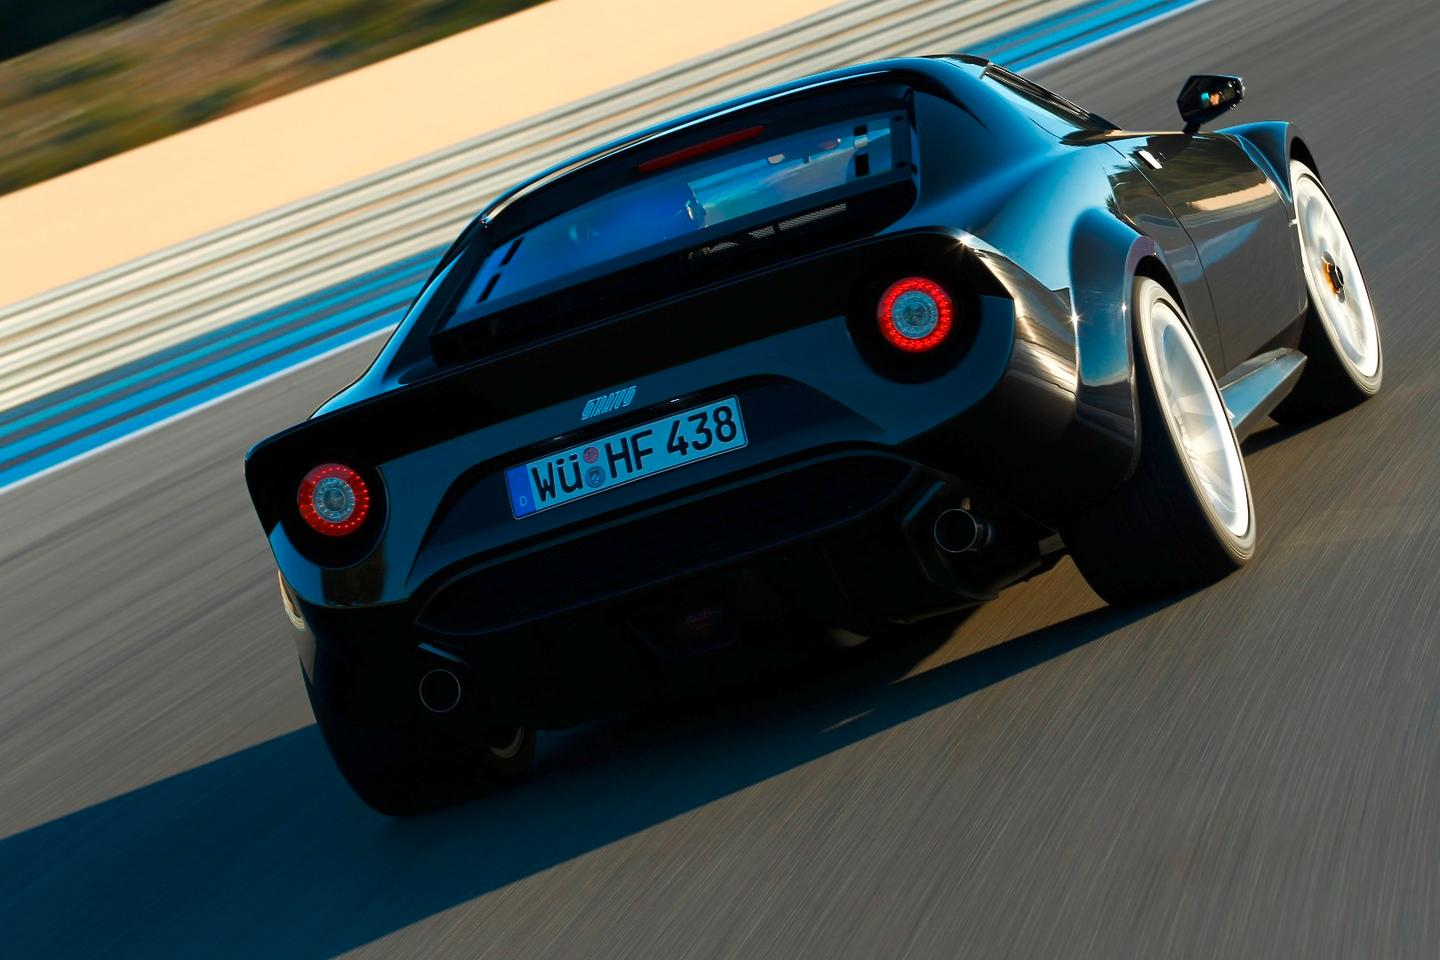 The new Stratos looks very much like the original from its wedge-shaped body to the round taillights and roof-spoiler